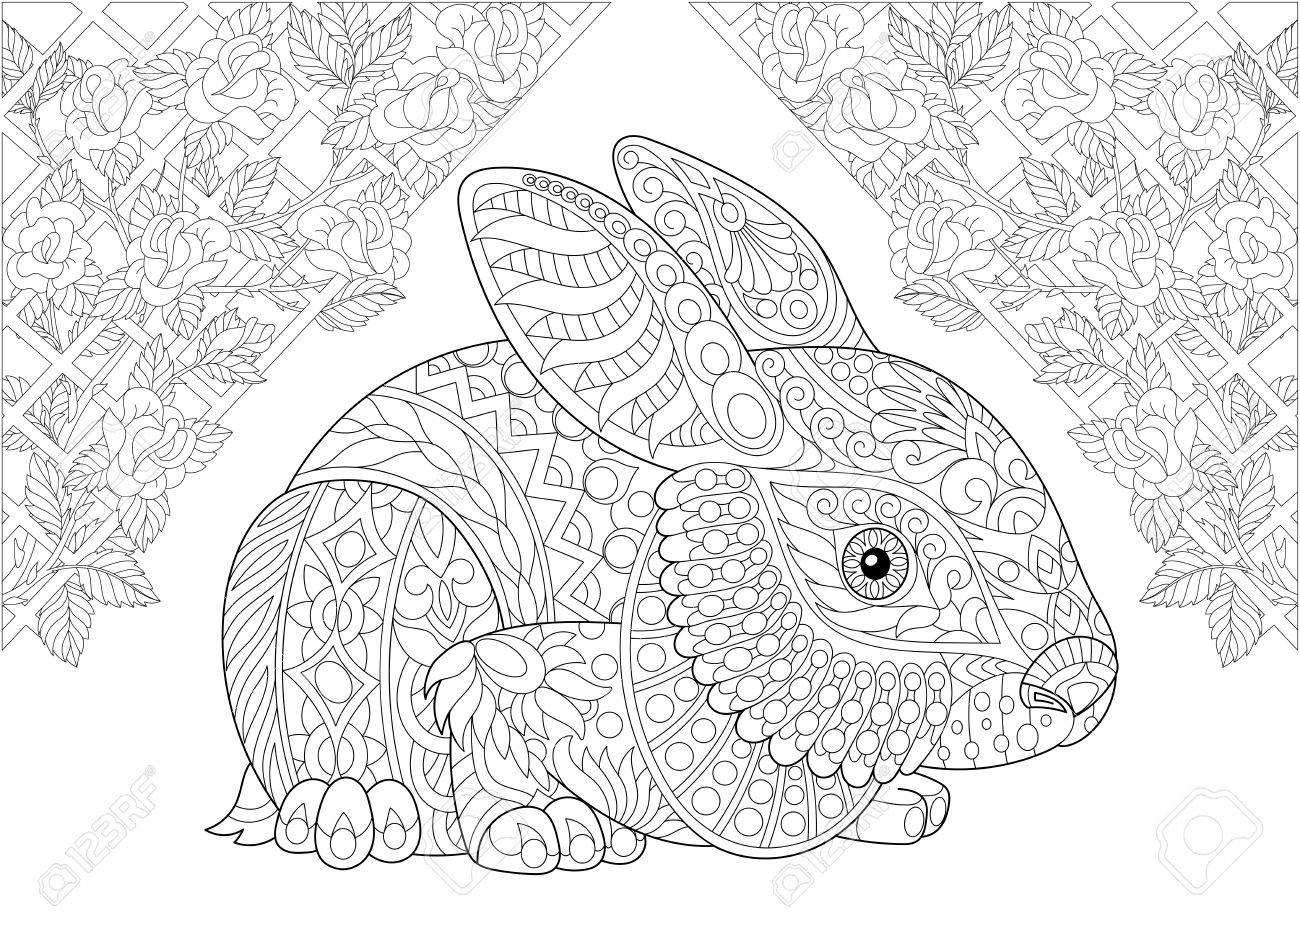 Coloring page. Rabbit from wonderland and rose flowers. Freehand sketch drawing for adult antistress colouring book in zentangle style. - 82877895